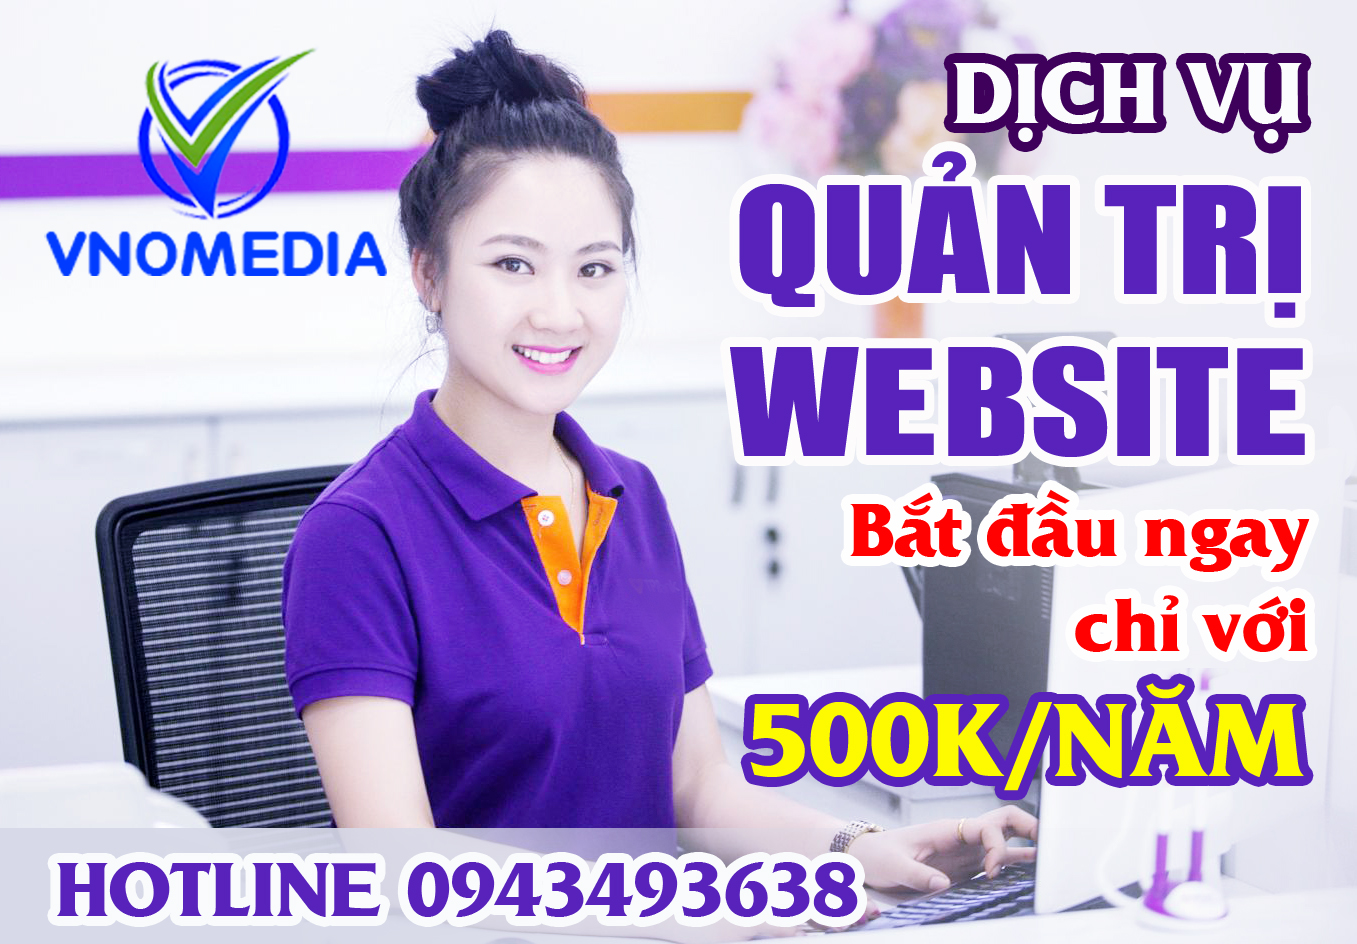 Dich vu quan tri Website